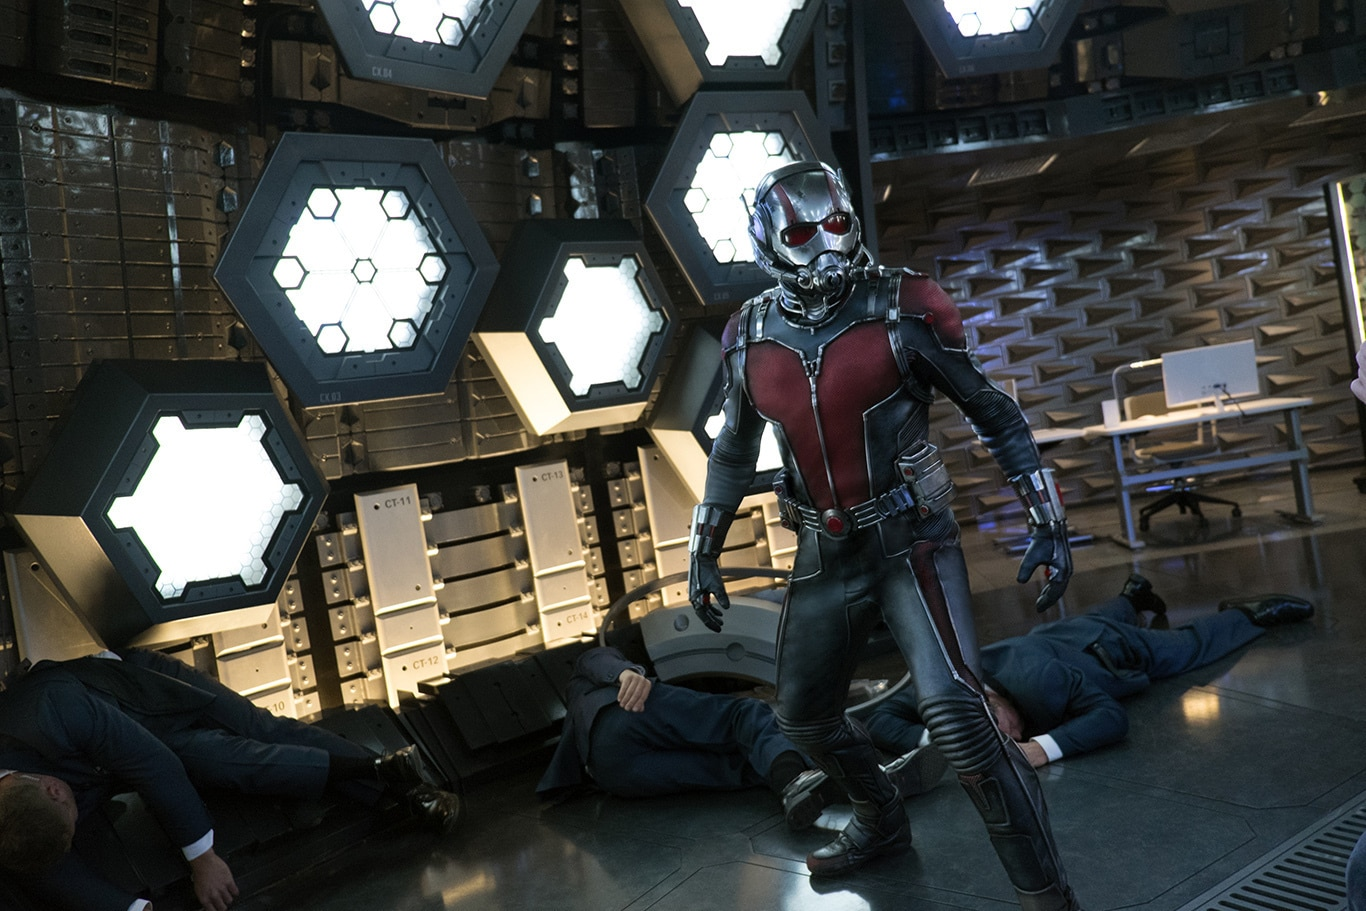 Ant-Man standing over unconscious men in suits in the movie Ant-Man